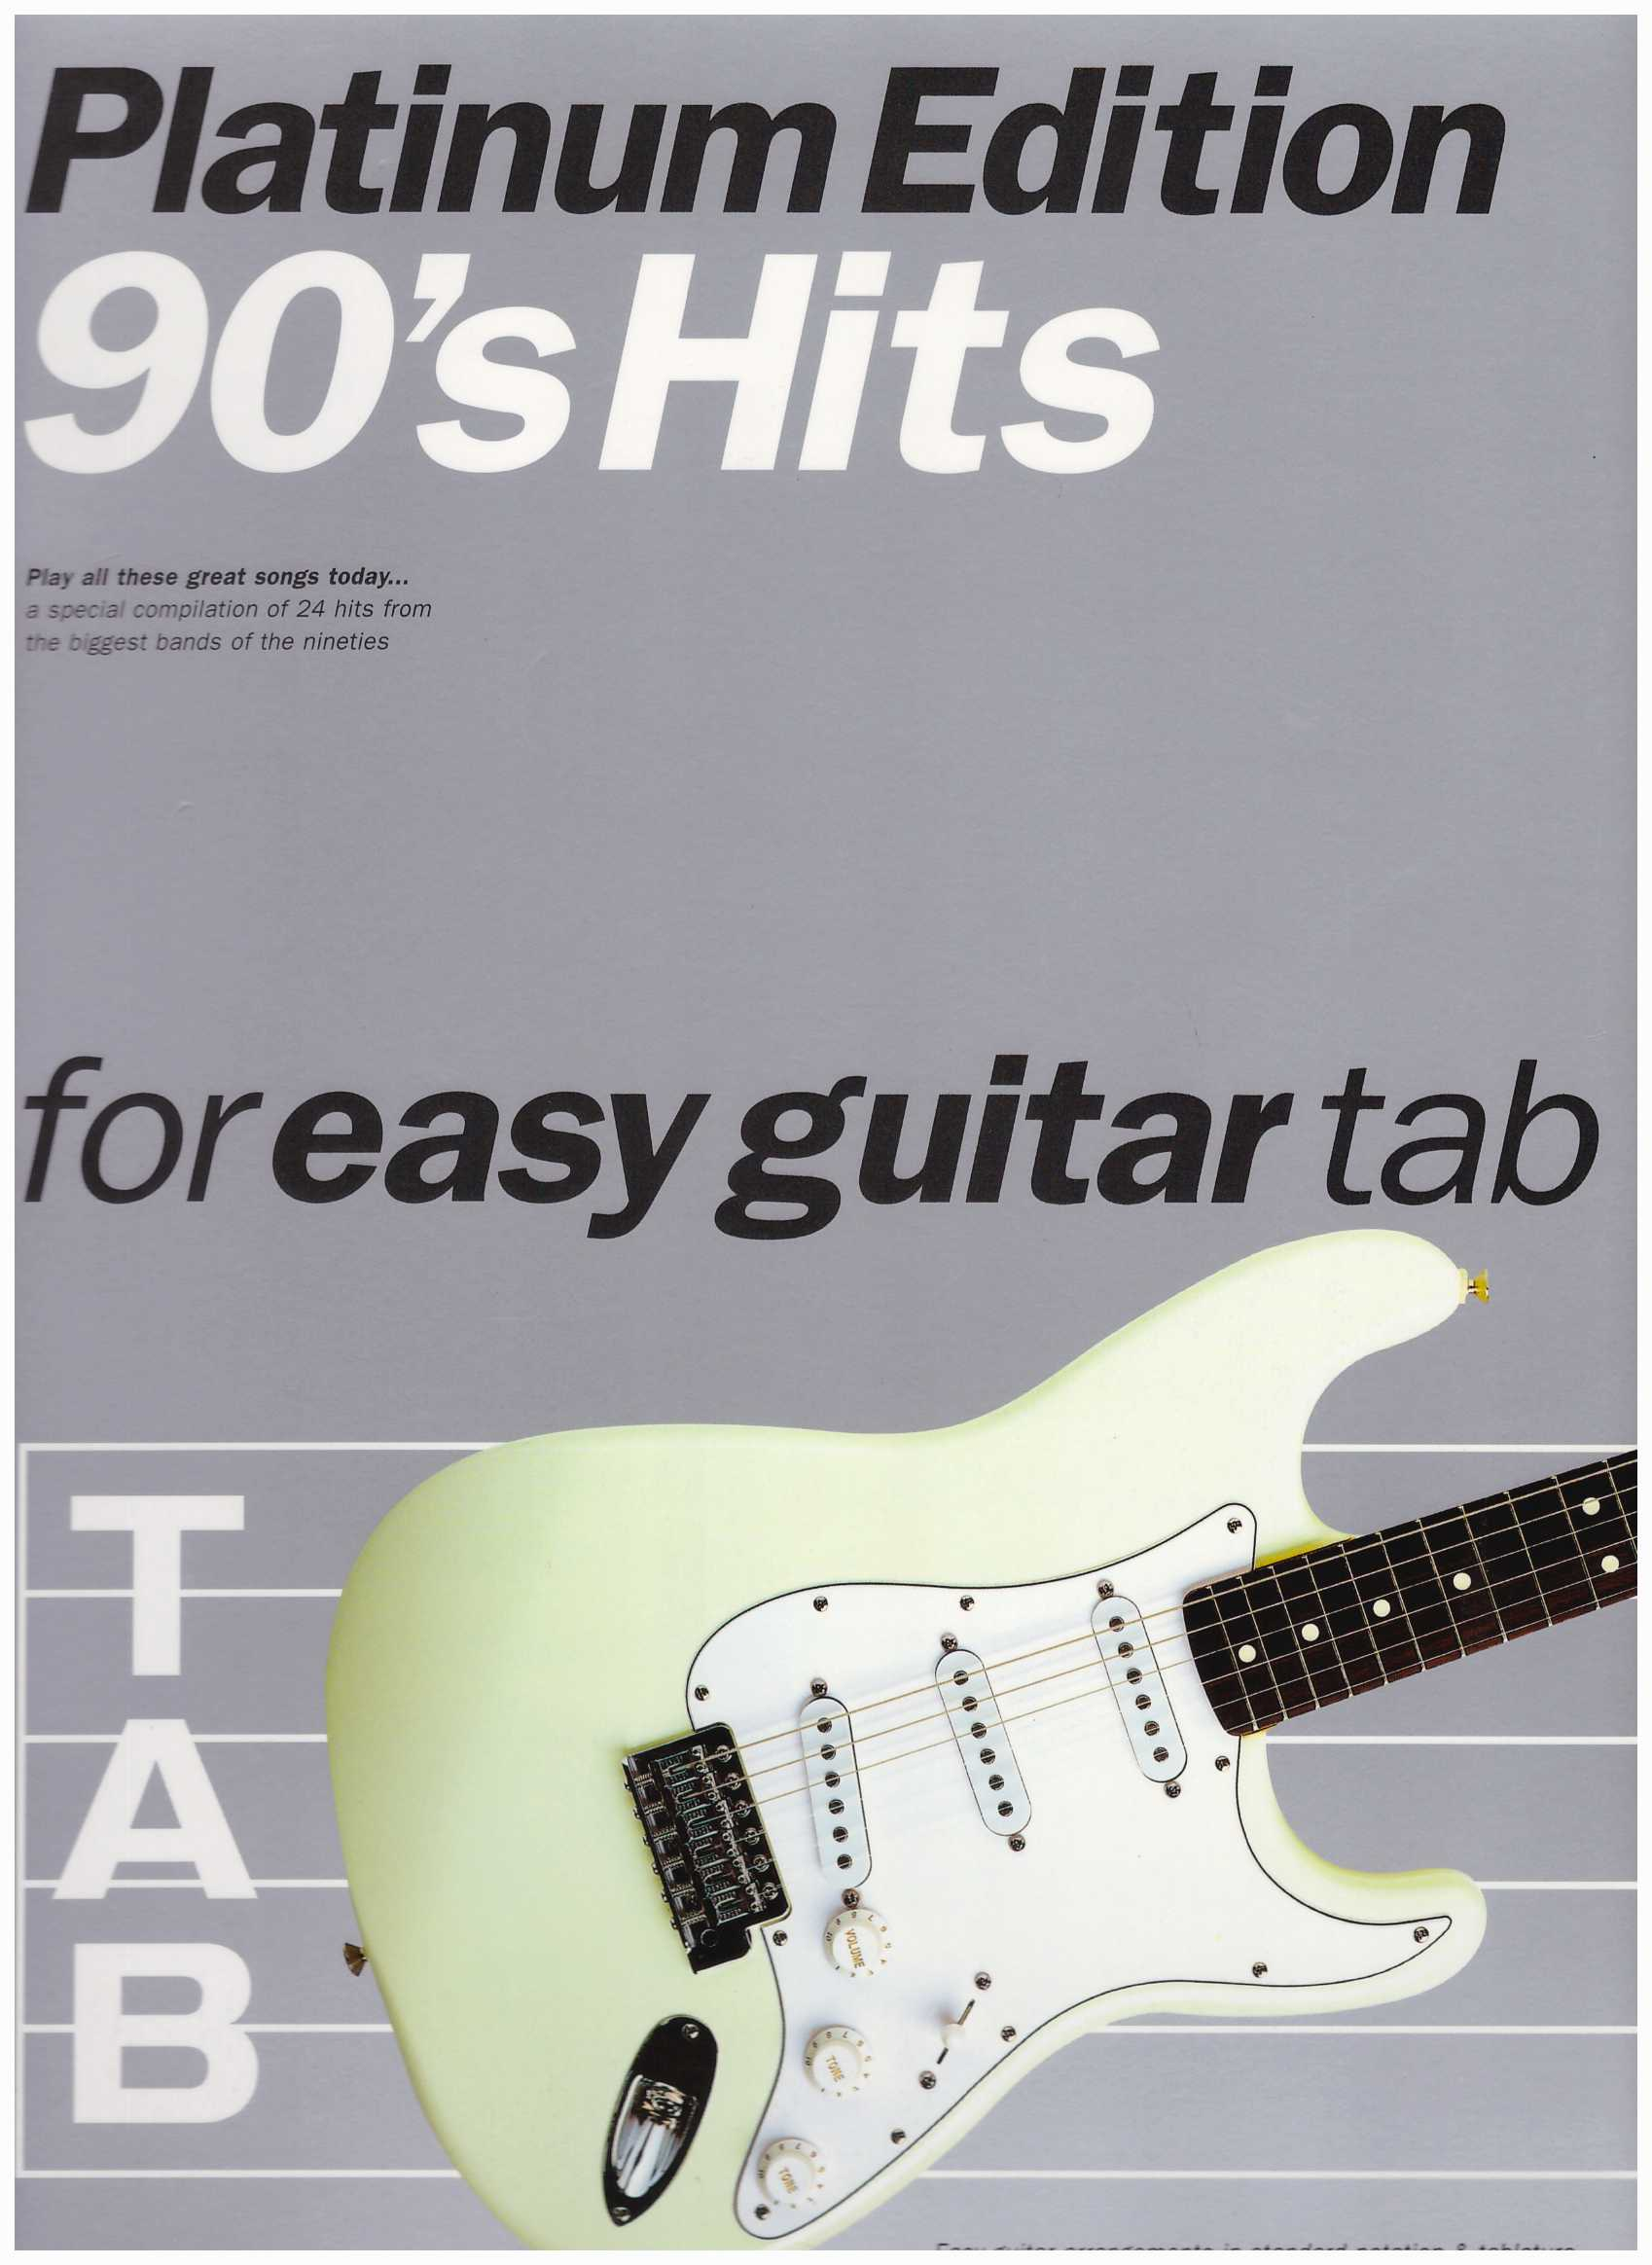 Platinum Edition 90's Hits For Easy Guitar Tab / Pop Song Book / Vocal Book / Guitar Book / Tab Book / Guitar Tab Book